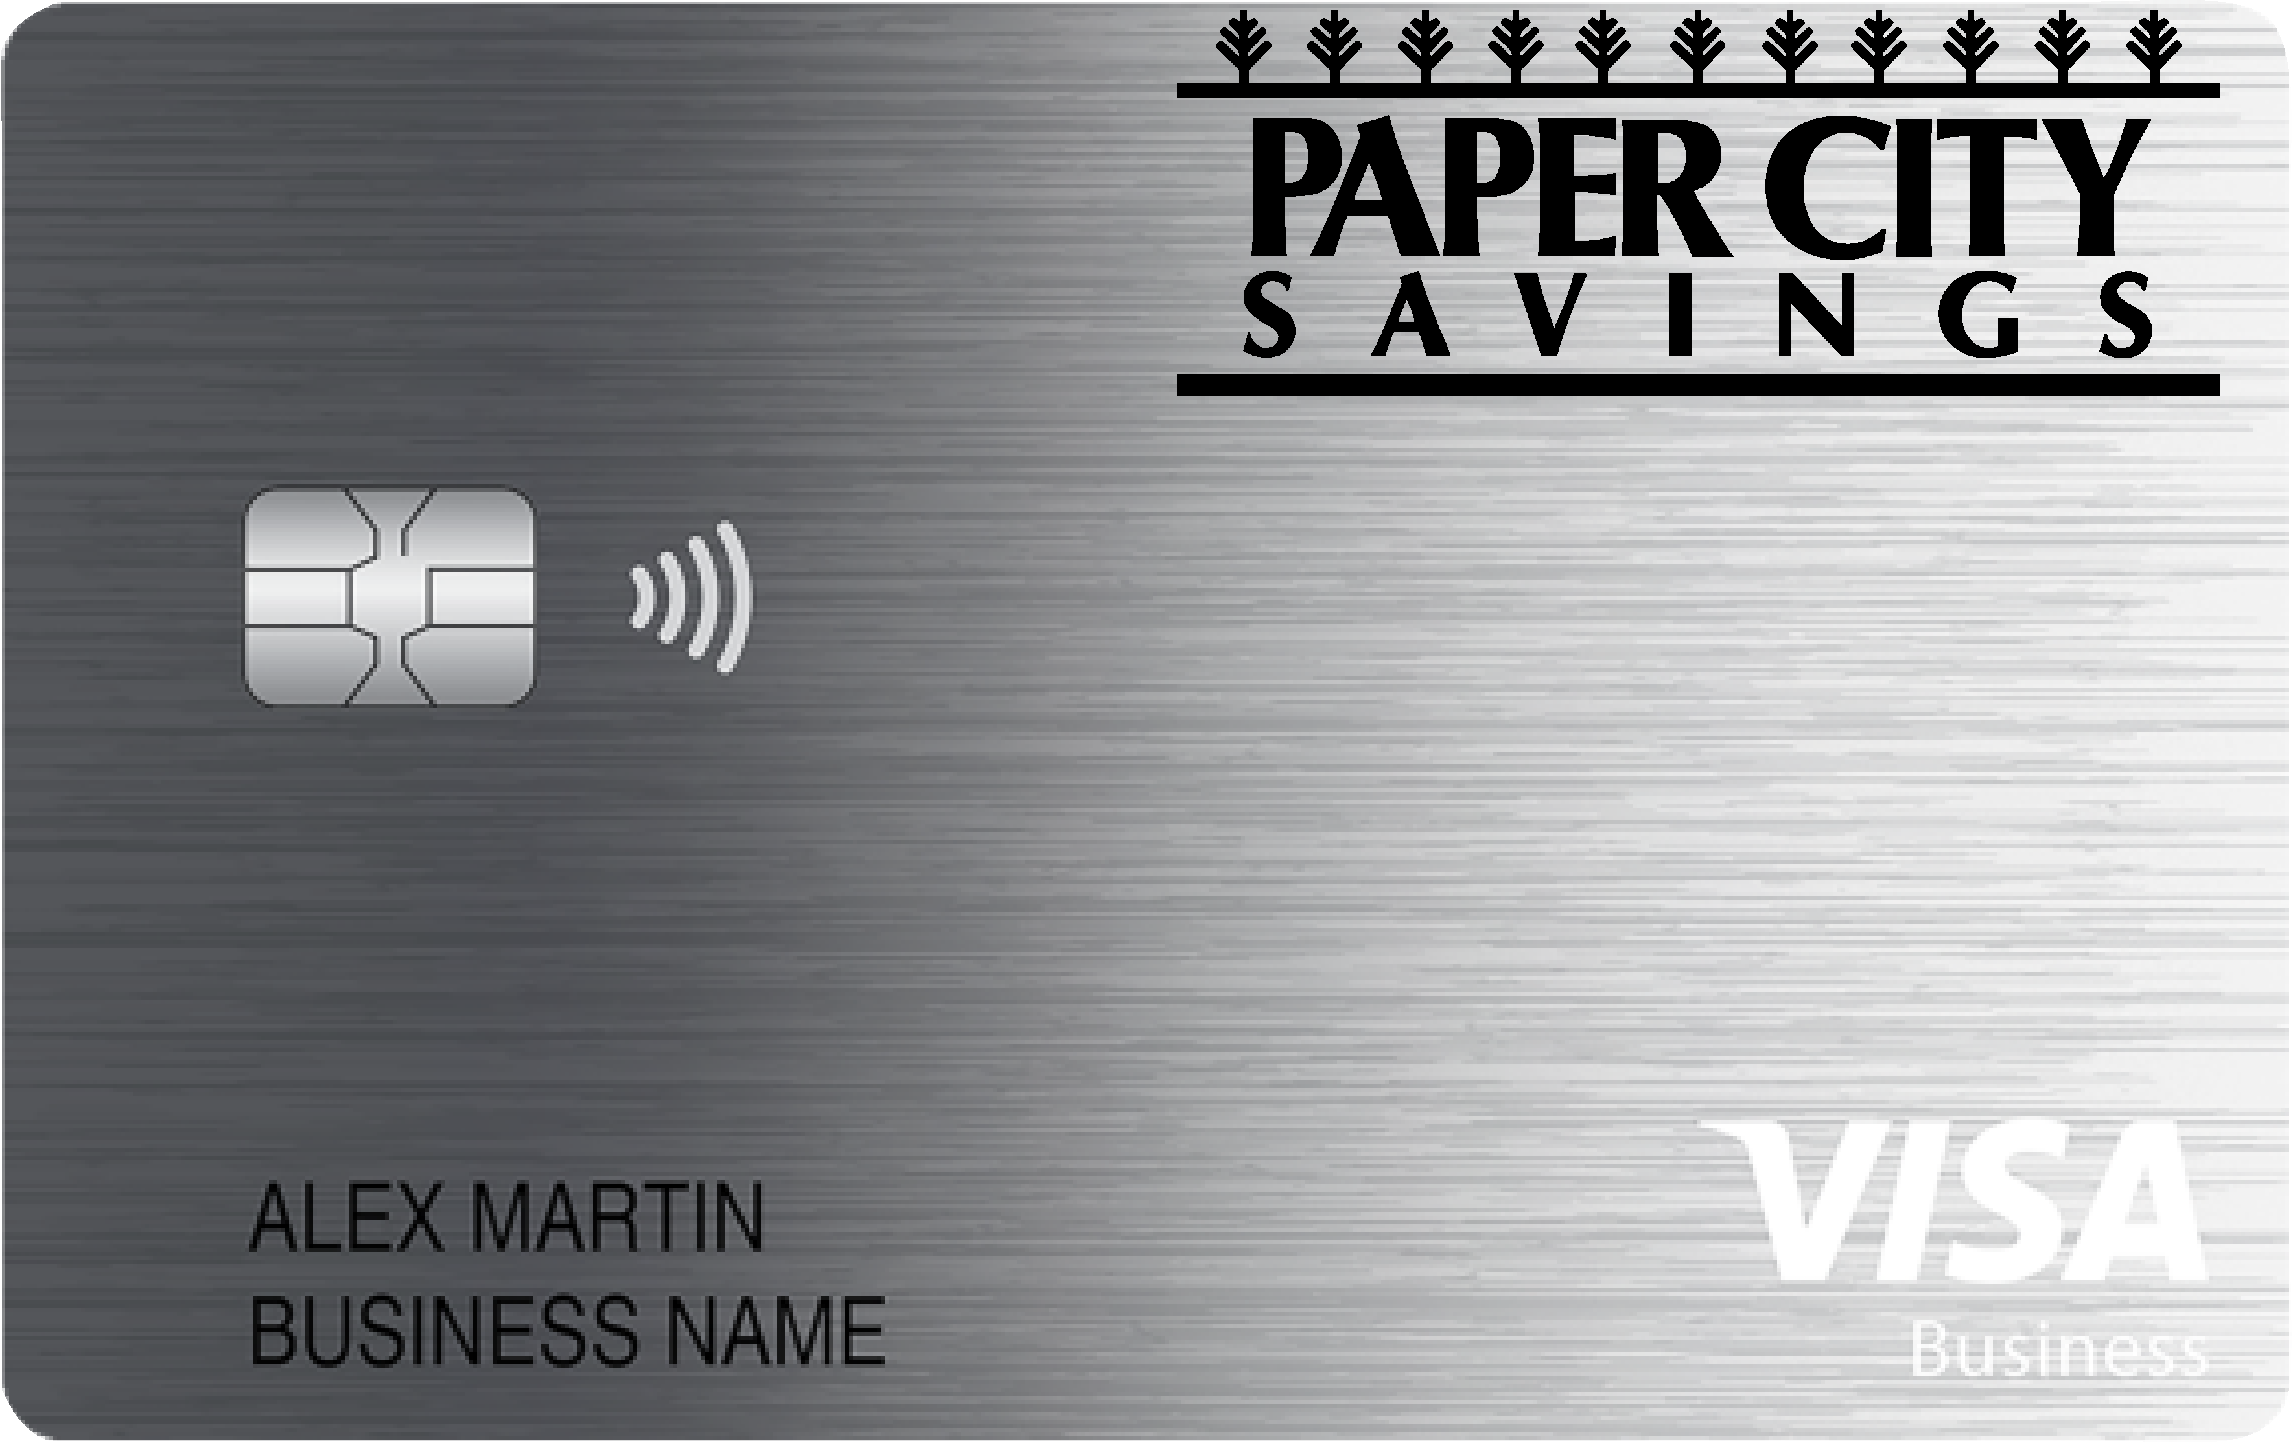 Paper City Savings